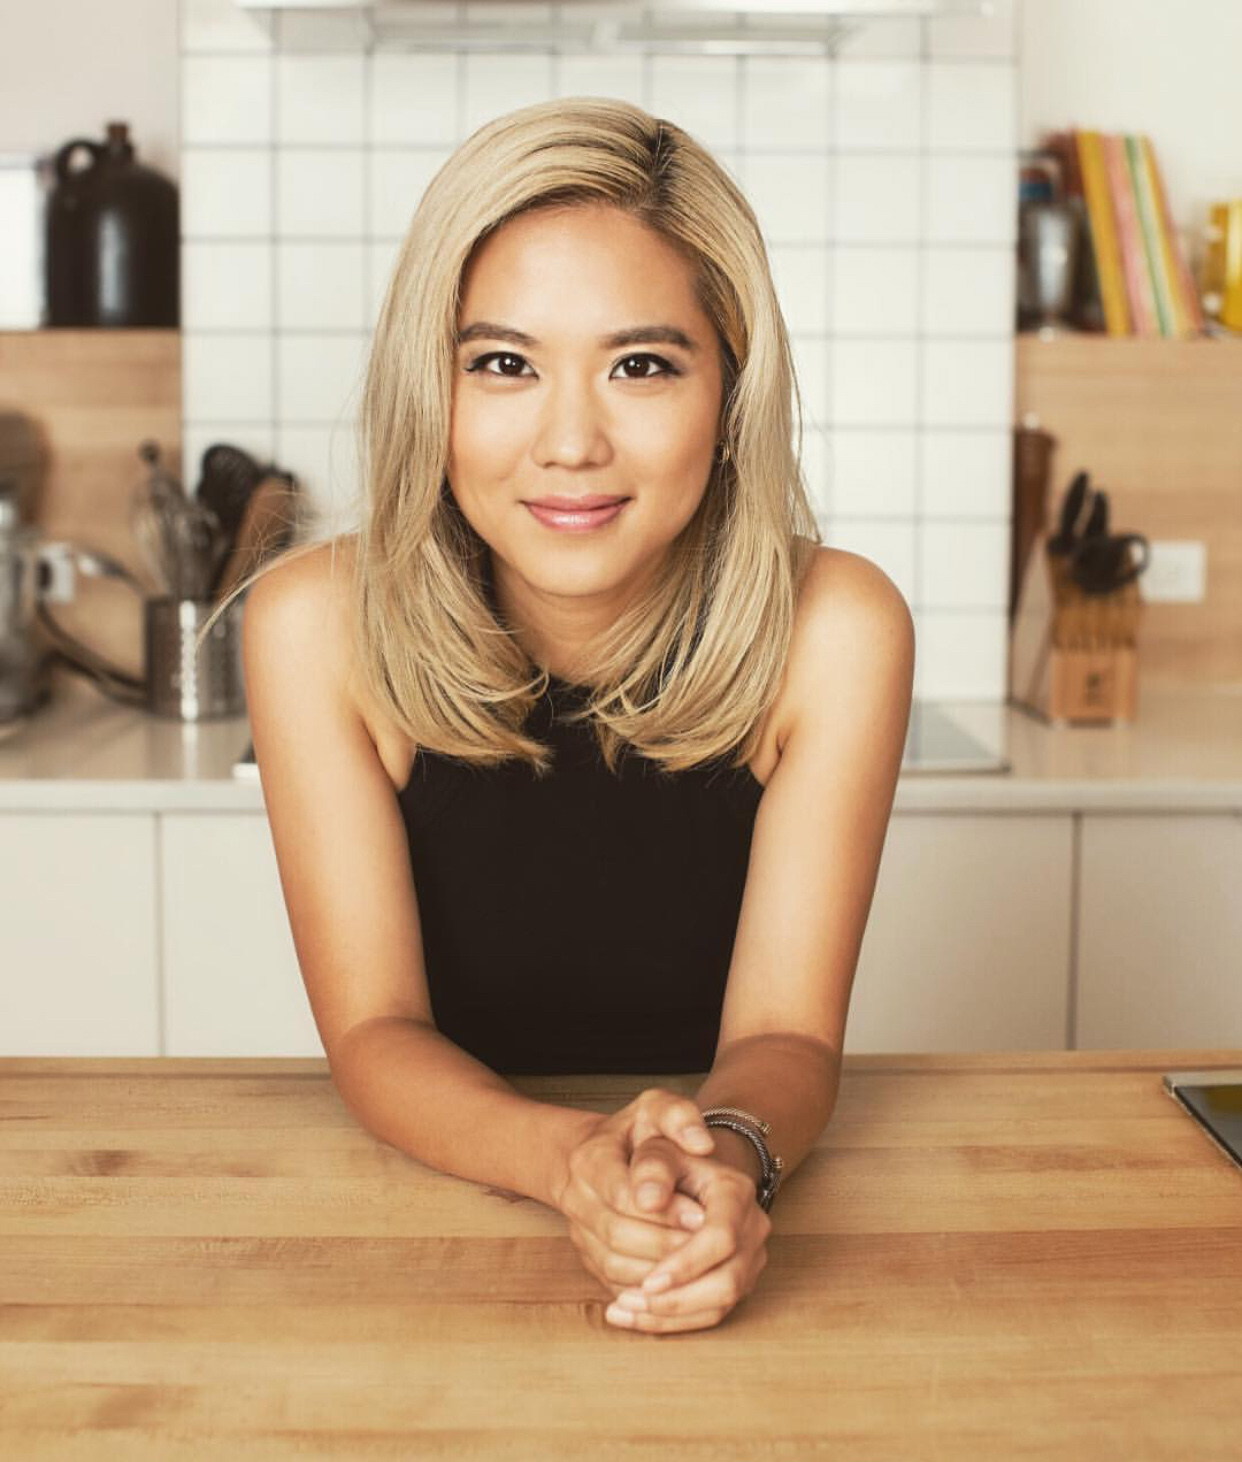 Chef Esther Choi - Hailed as New Rising Chef by Food Republic and named a Zagat 30 under 30 NYC Culinary Rockstar, Chef Choi owns Mŏkbar and Ms. Yoo in NYC.